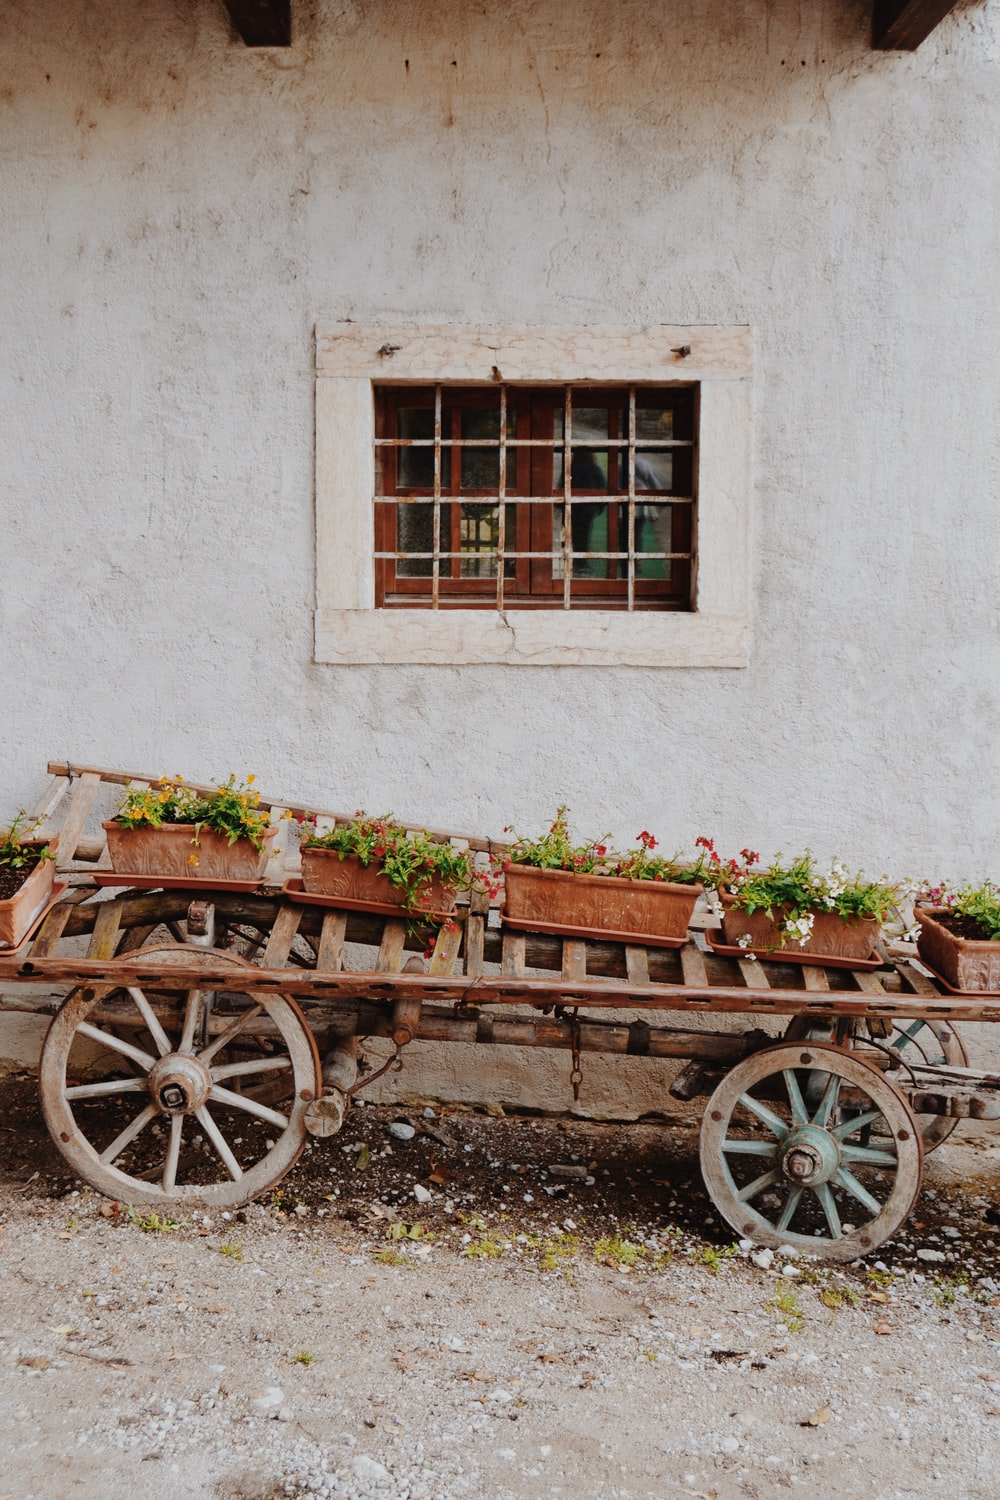 brown carriage near wall